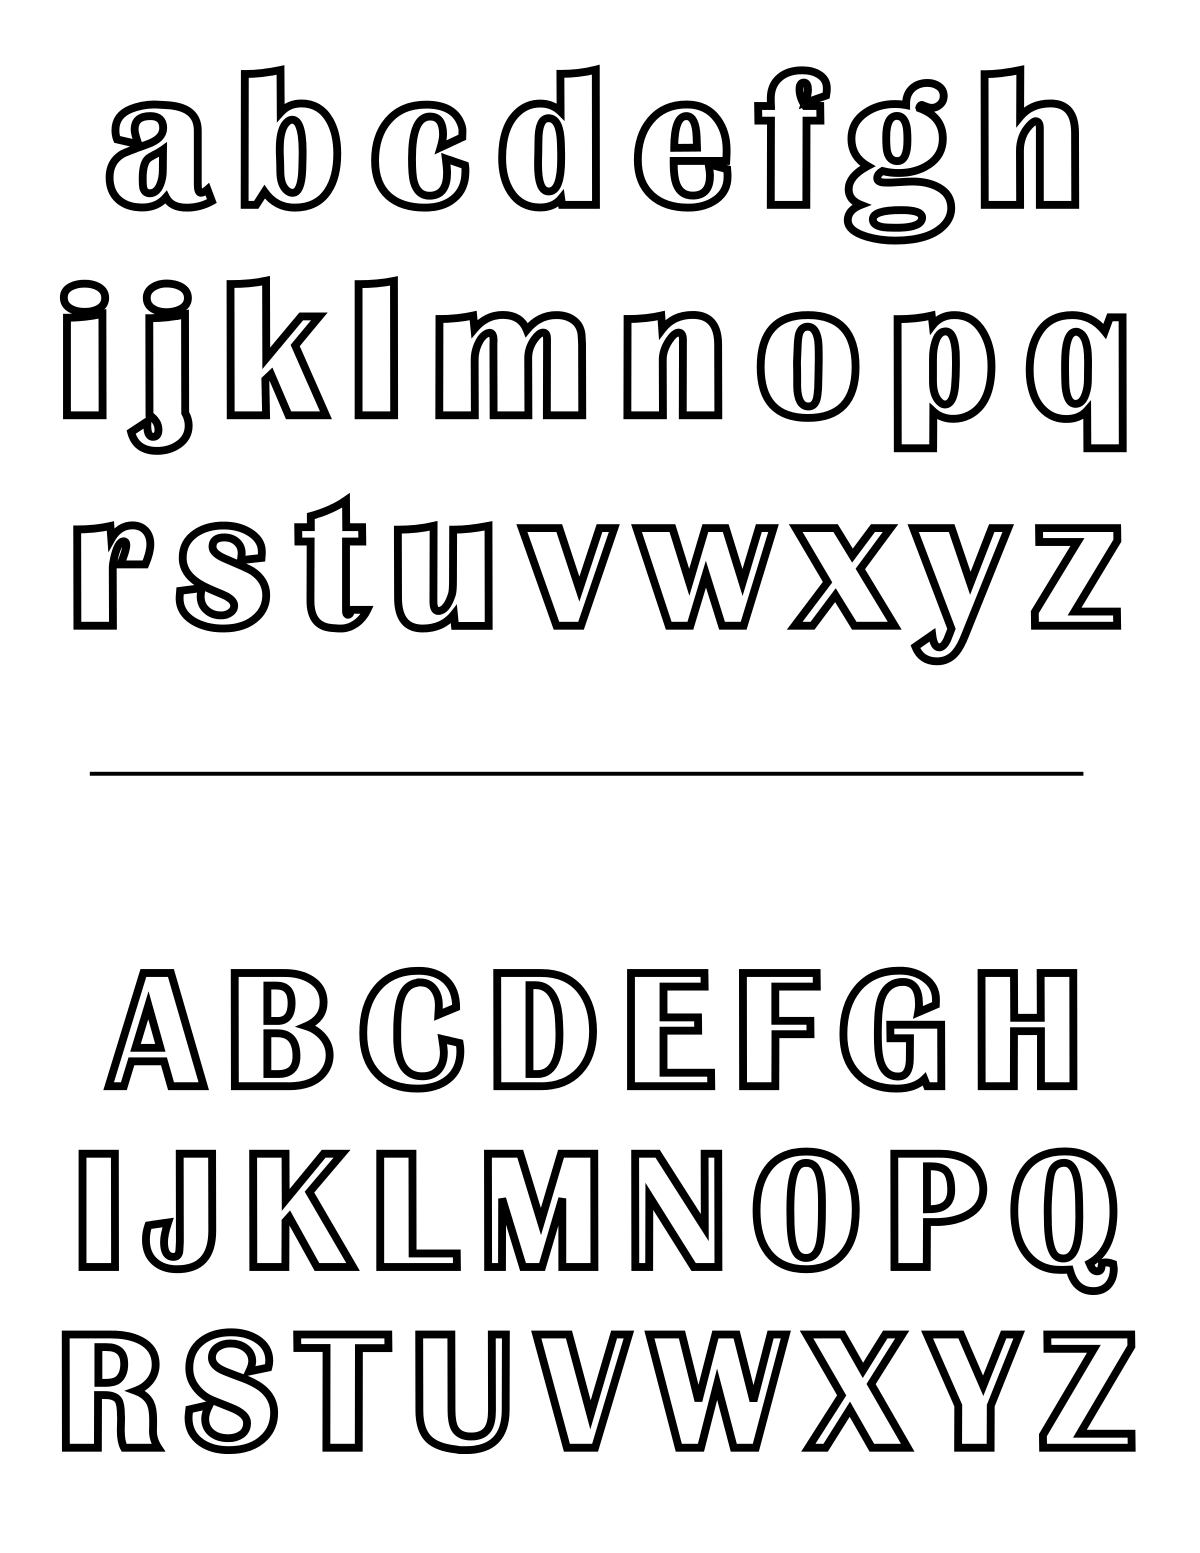 english alphabet coloring pages alphabet coloring pages by katie roltgen teachers pay coloring pages alphabet english